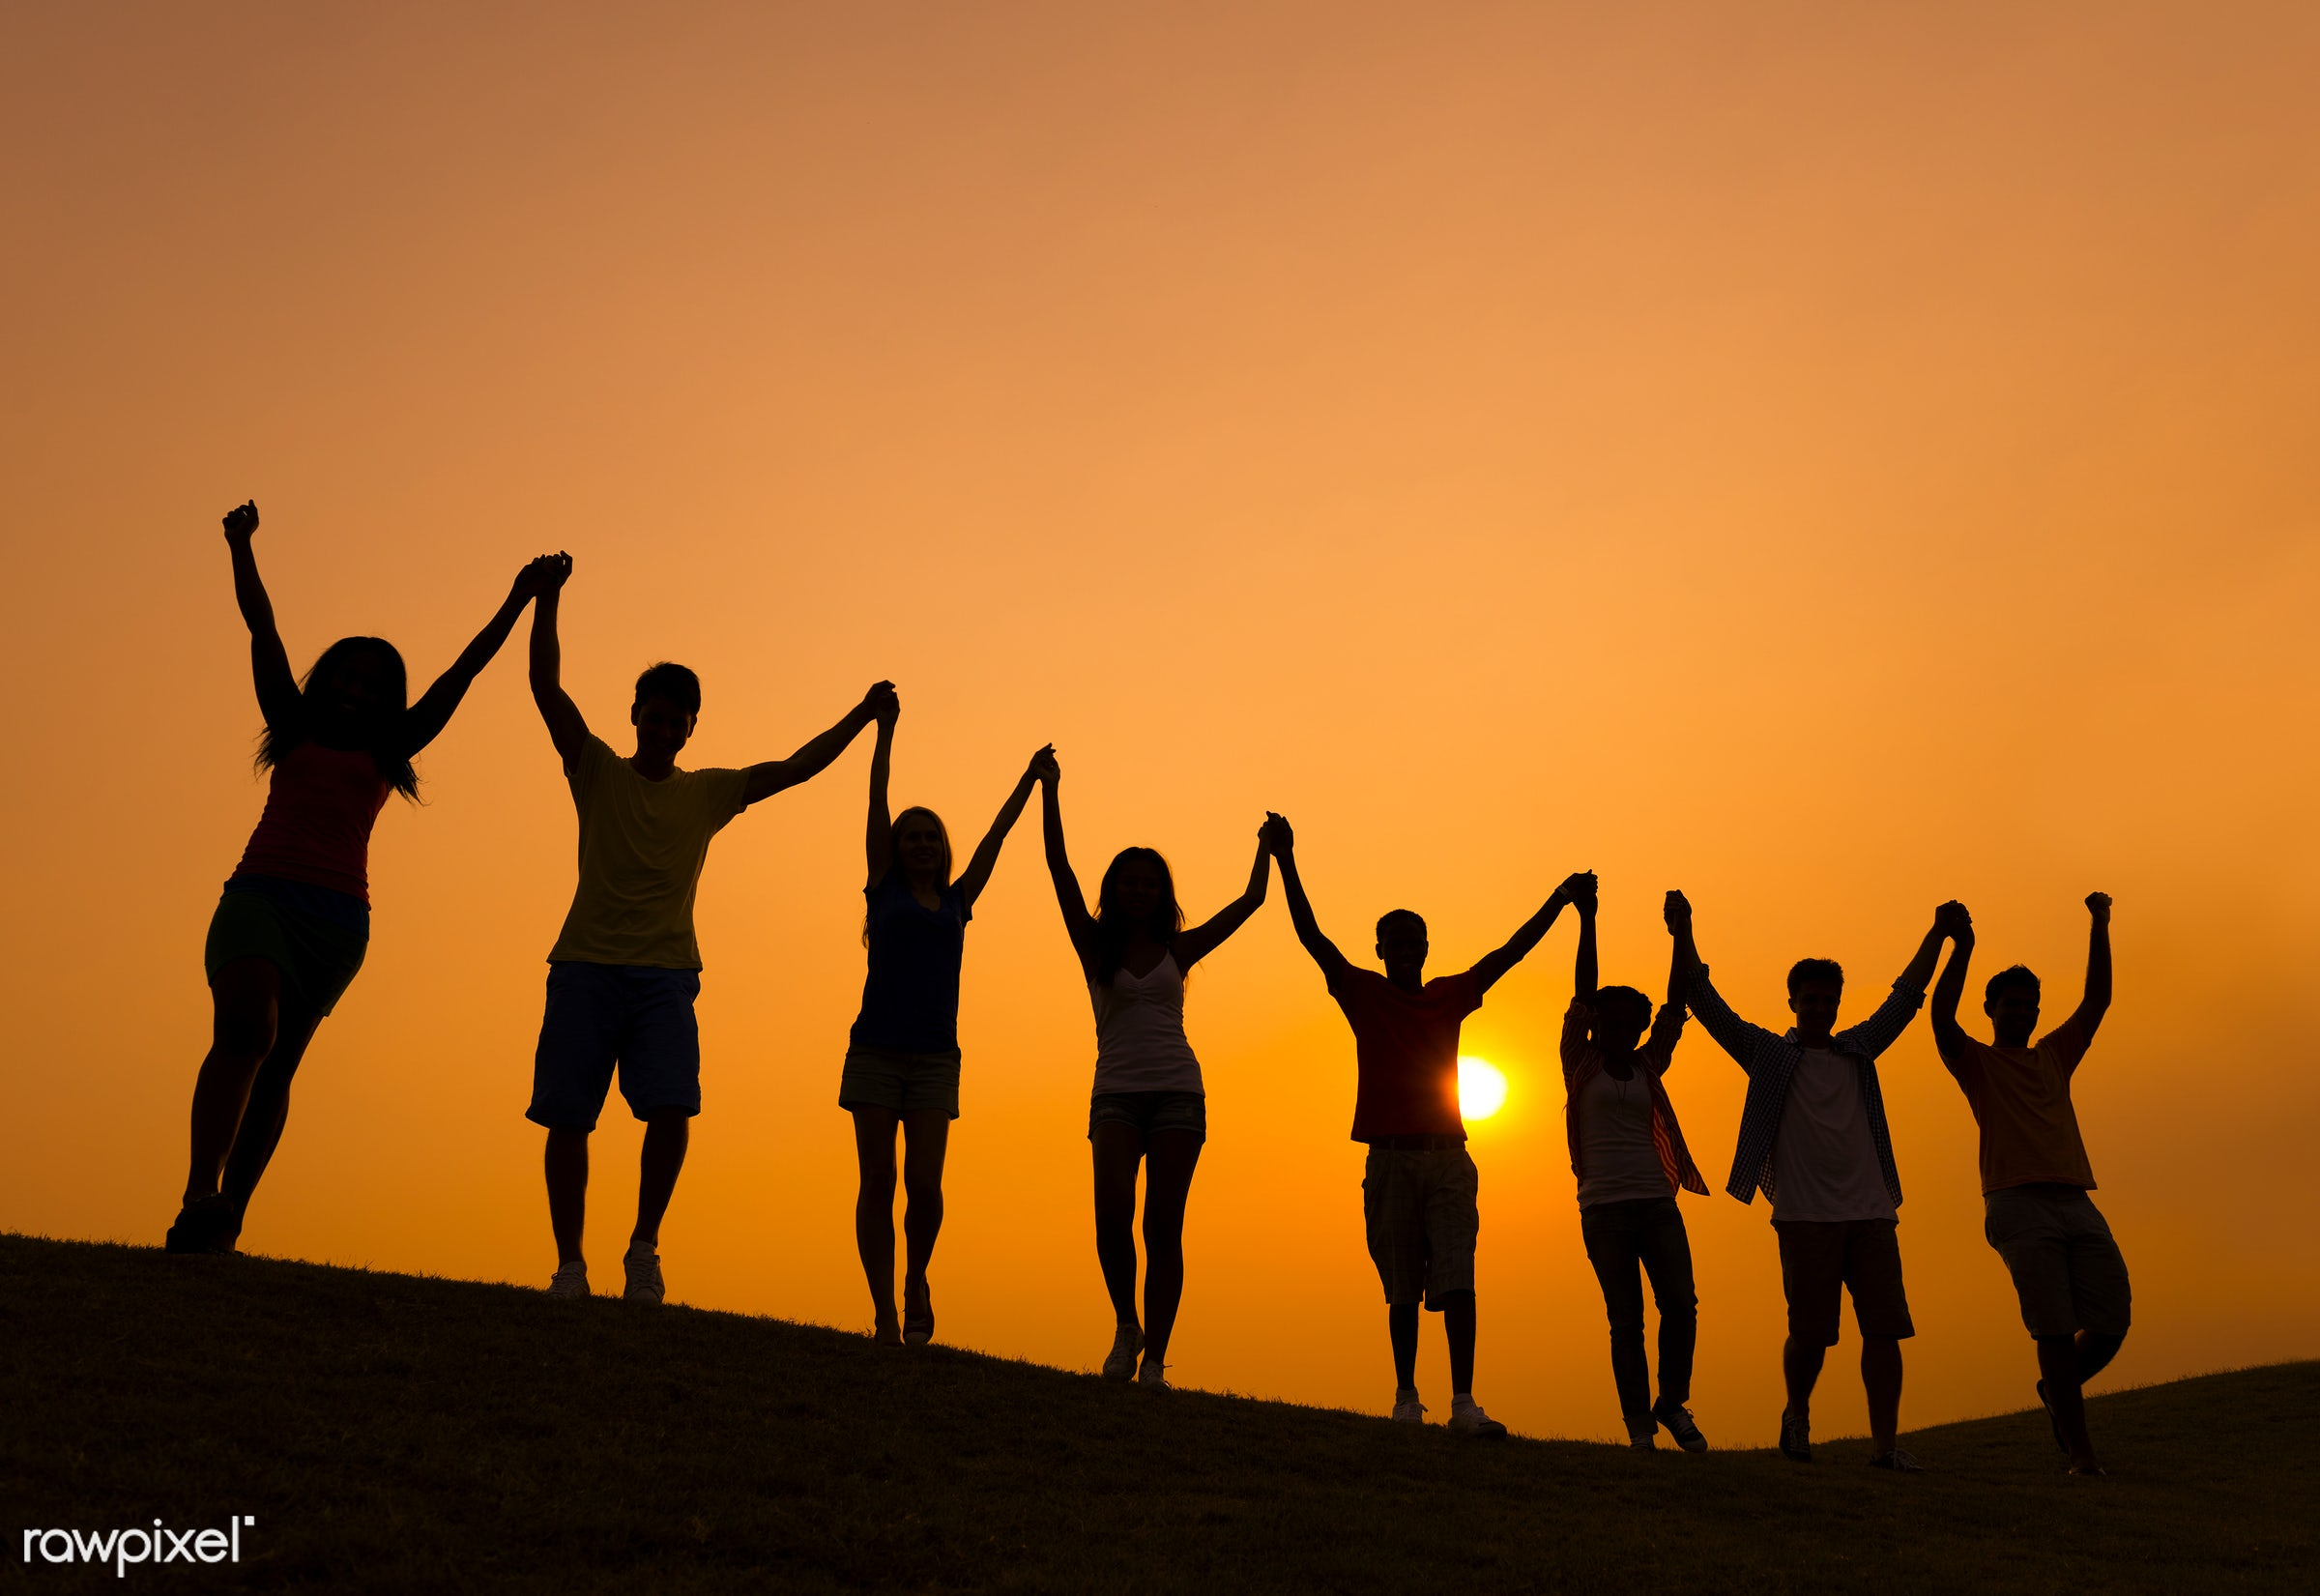 achievement, arms outstretched, arms raised, casual, celebration, cheerful, color image, community, confidence, cooperation...